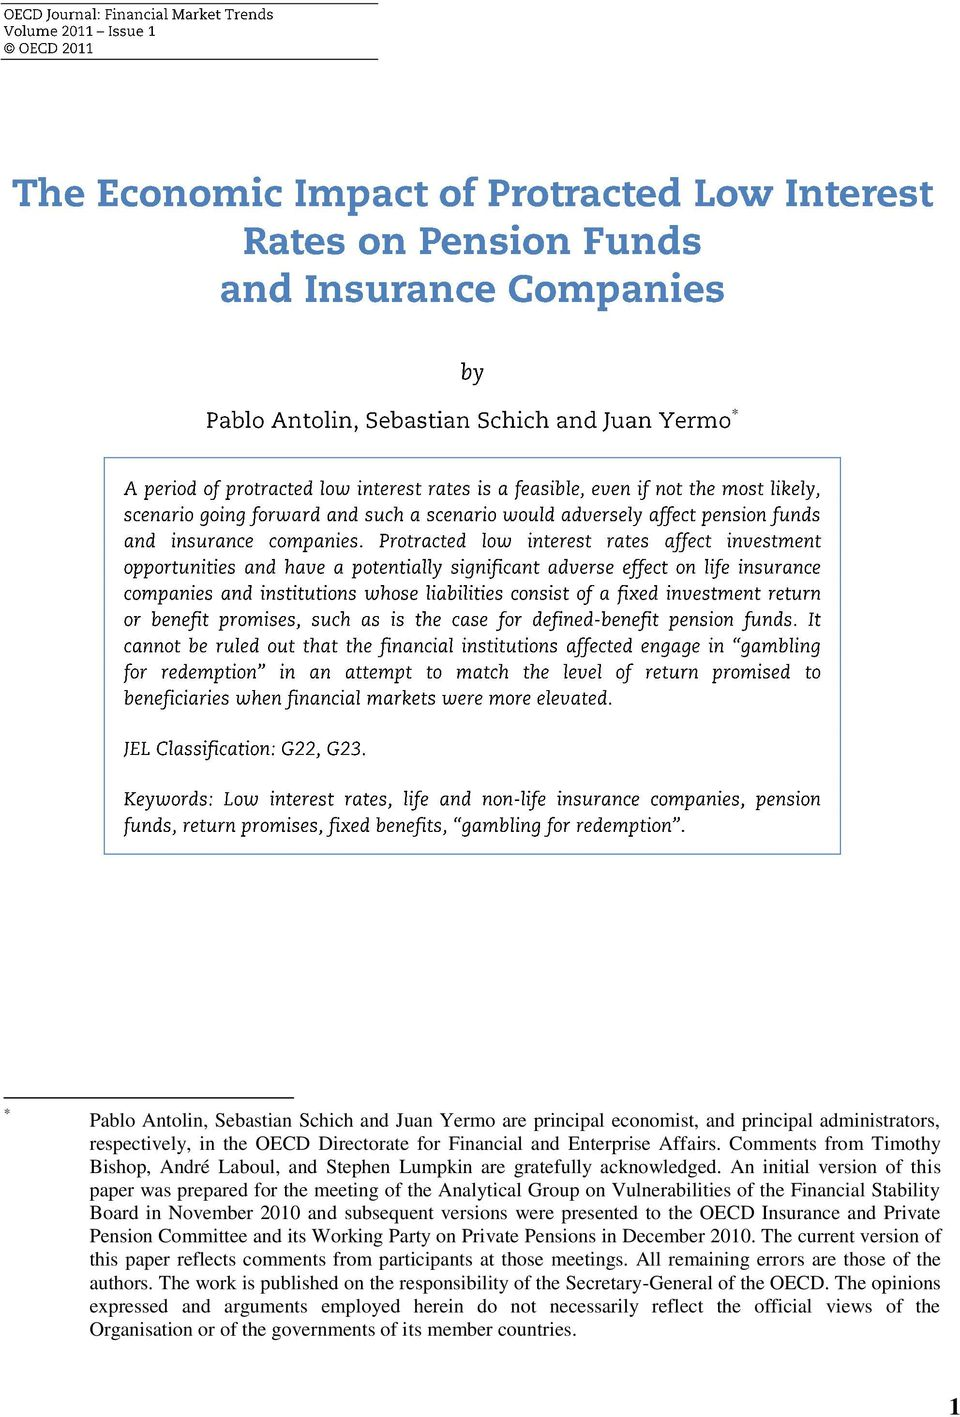 An initial version of this paper was prepared for the meeting of the Analytical Group on Vulnerabilities of the Financial Stability Board in November 2010 and subsequent versions were presented to